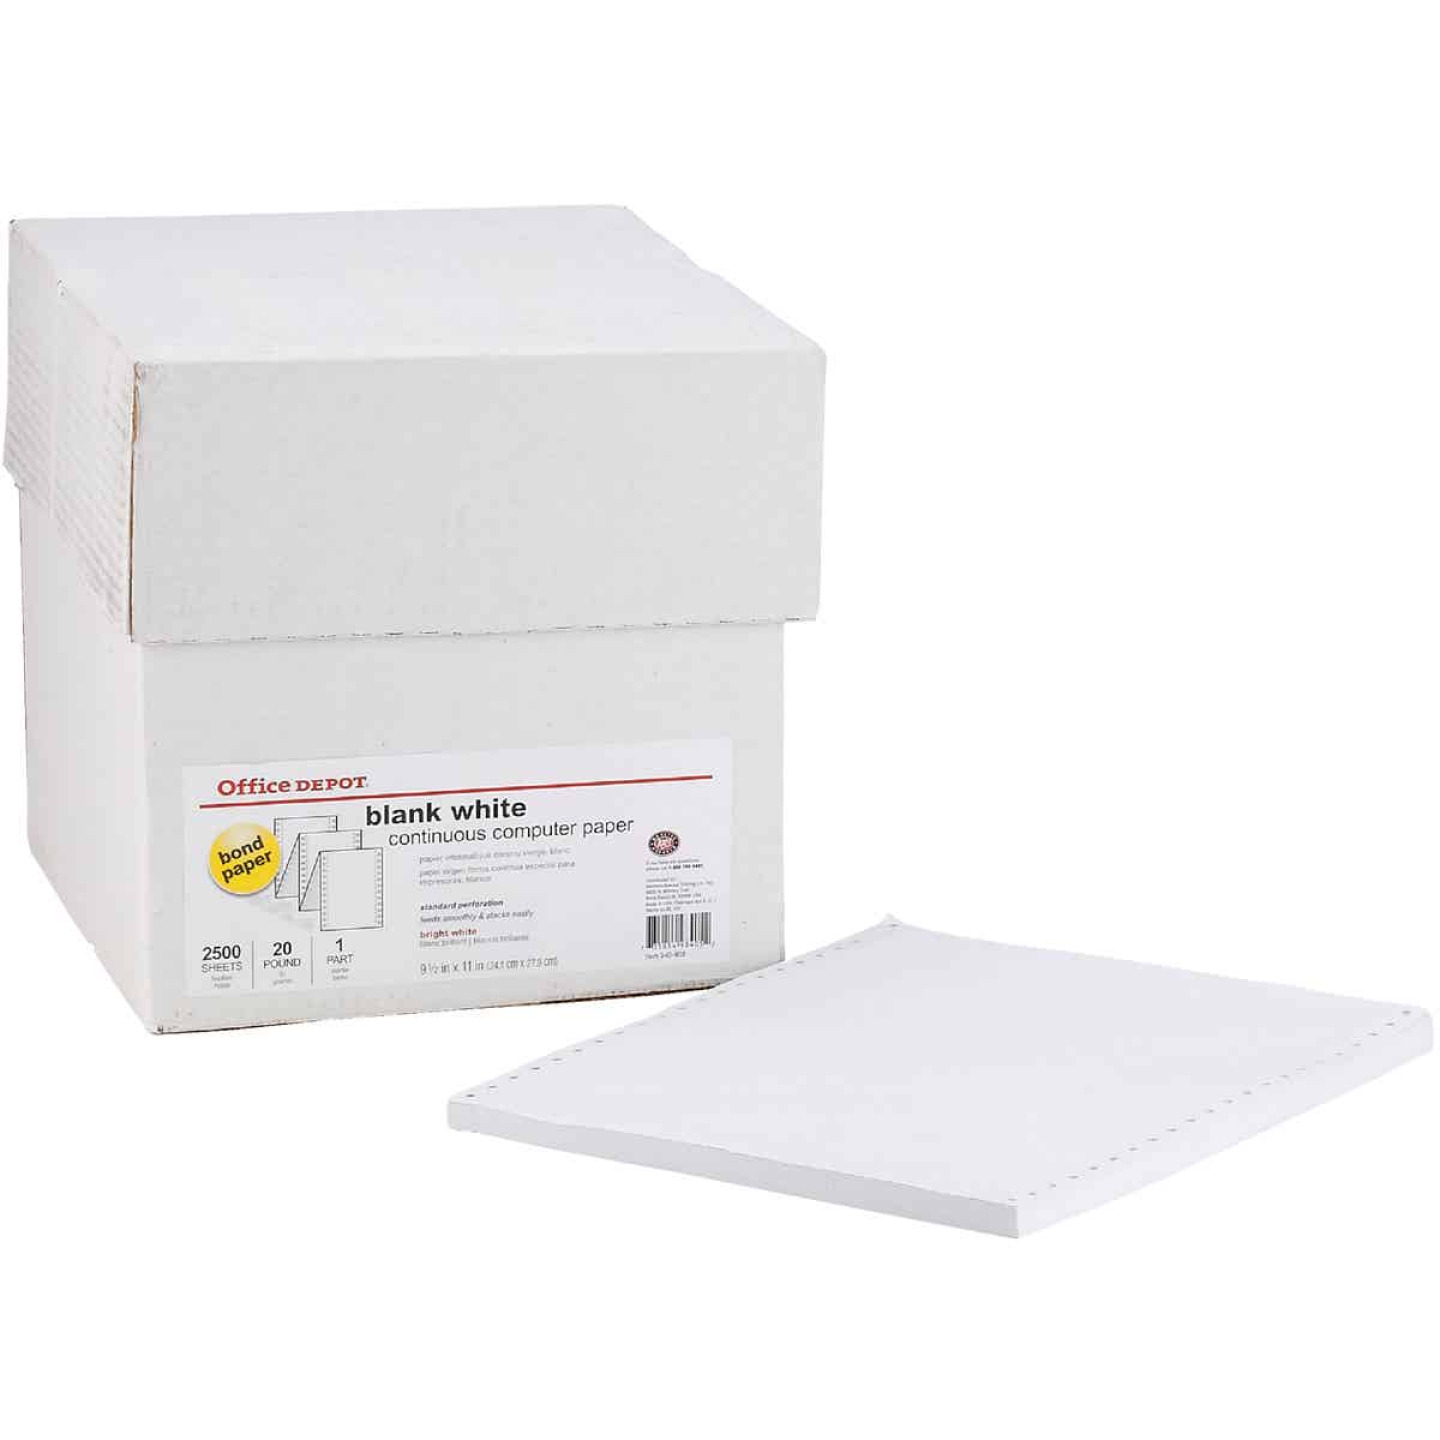 Staples 8-1/2 In. x 11 In. 20 Lb. White Blank Computer Printer Paper, 2500 Sheets Image 1